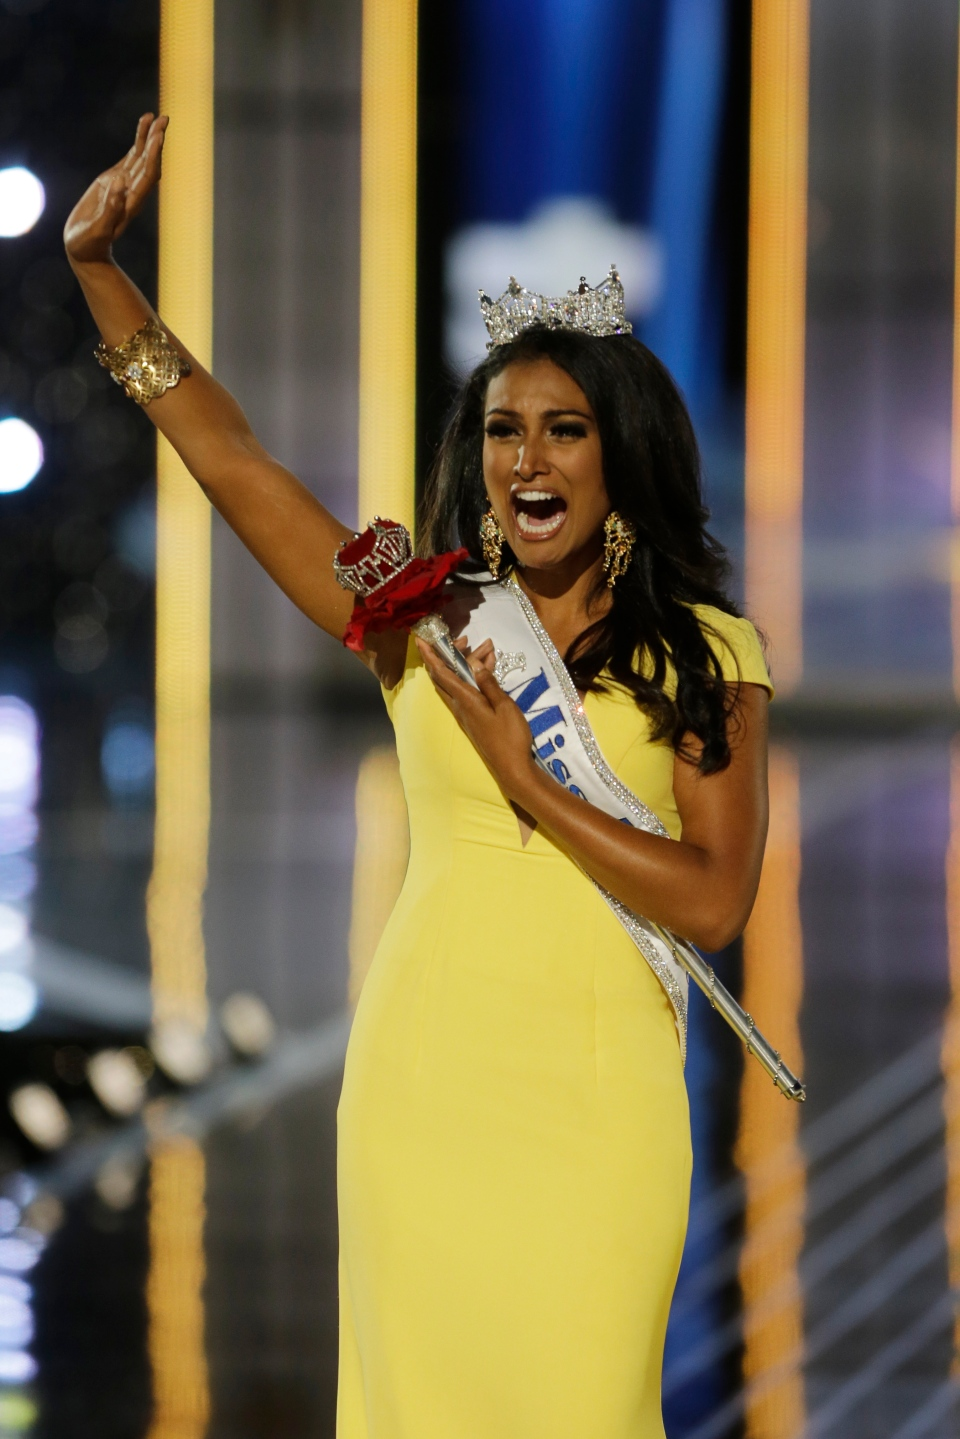 Miss New York Nina Davuluri walks down the runway after winning the Miss America 2014 pageant, Sunday, Sept. 15, 2013, in Atlantic City, N.J. (AP / Mel Evans)